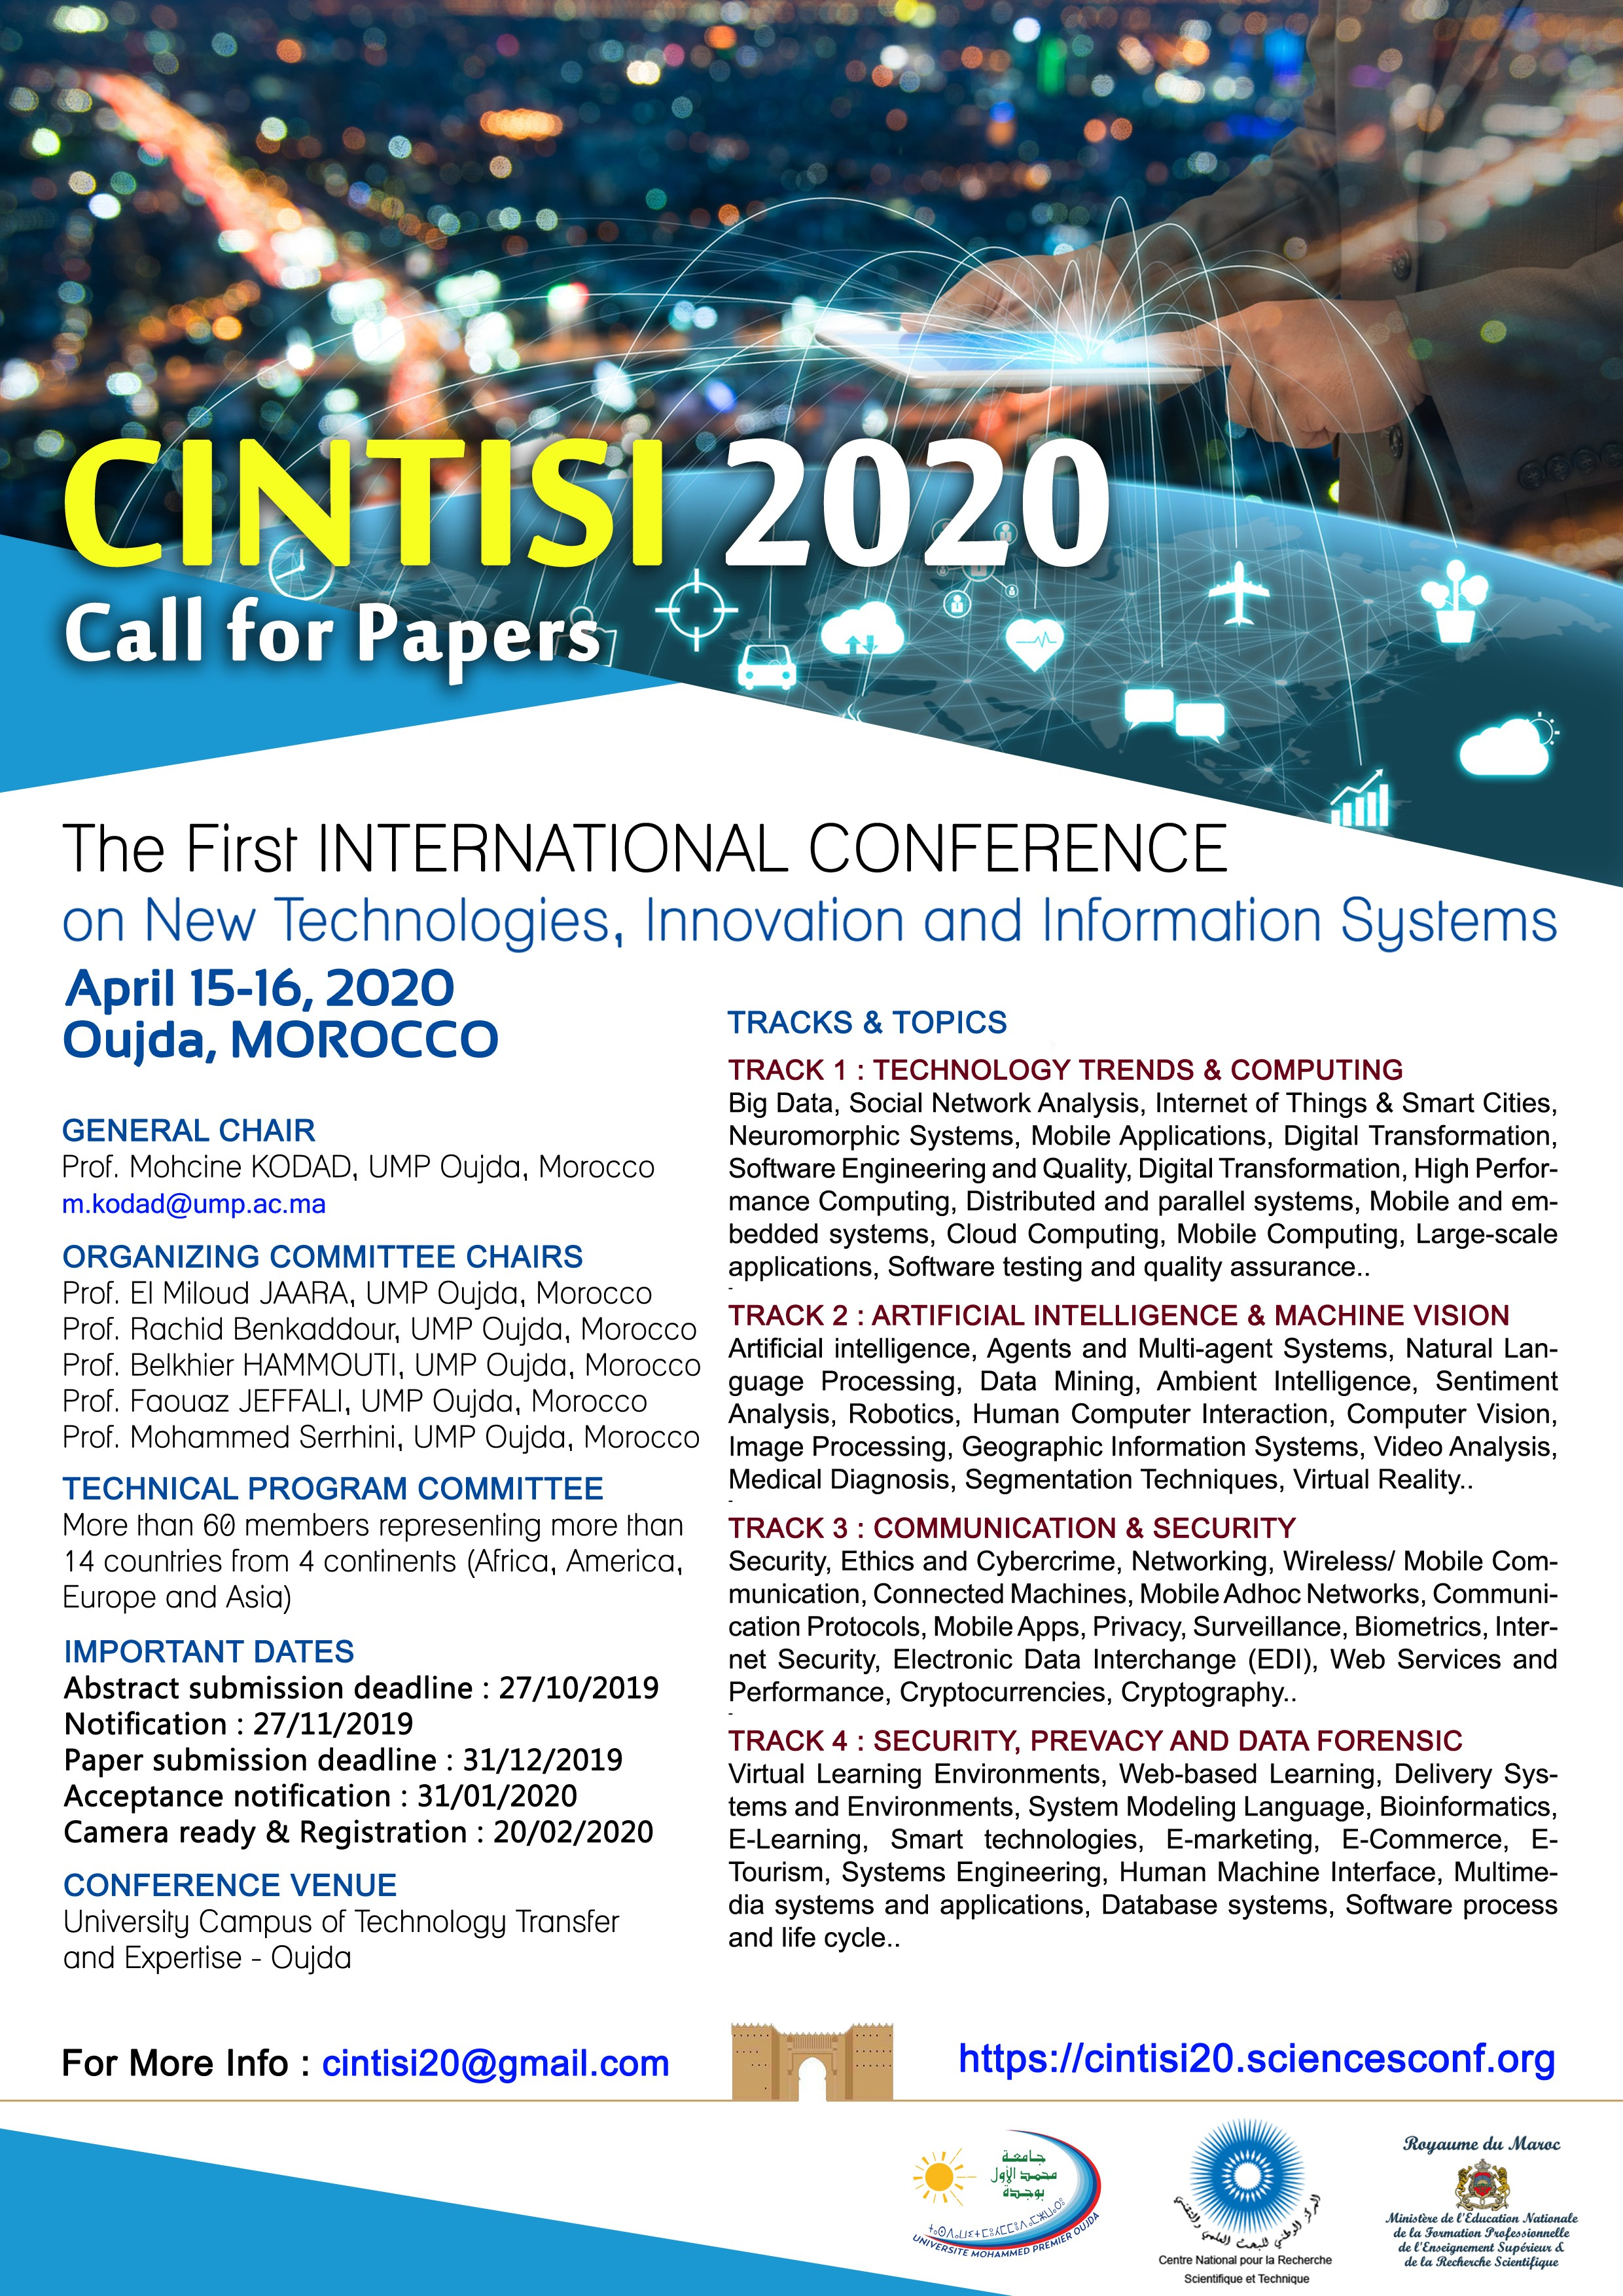 International Conference on New Technologies, Innovation and Information Systems (CINTISI'20)